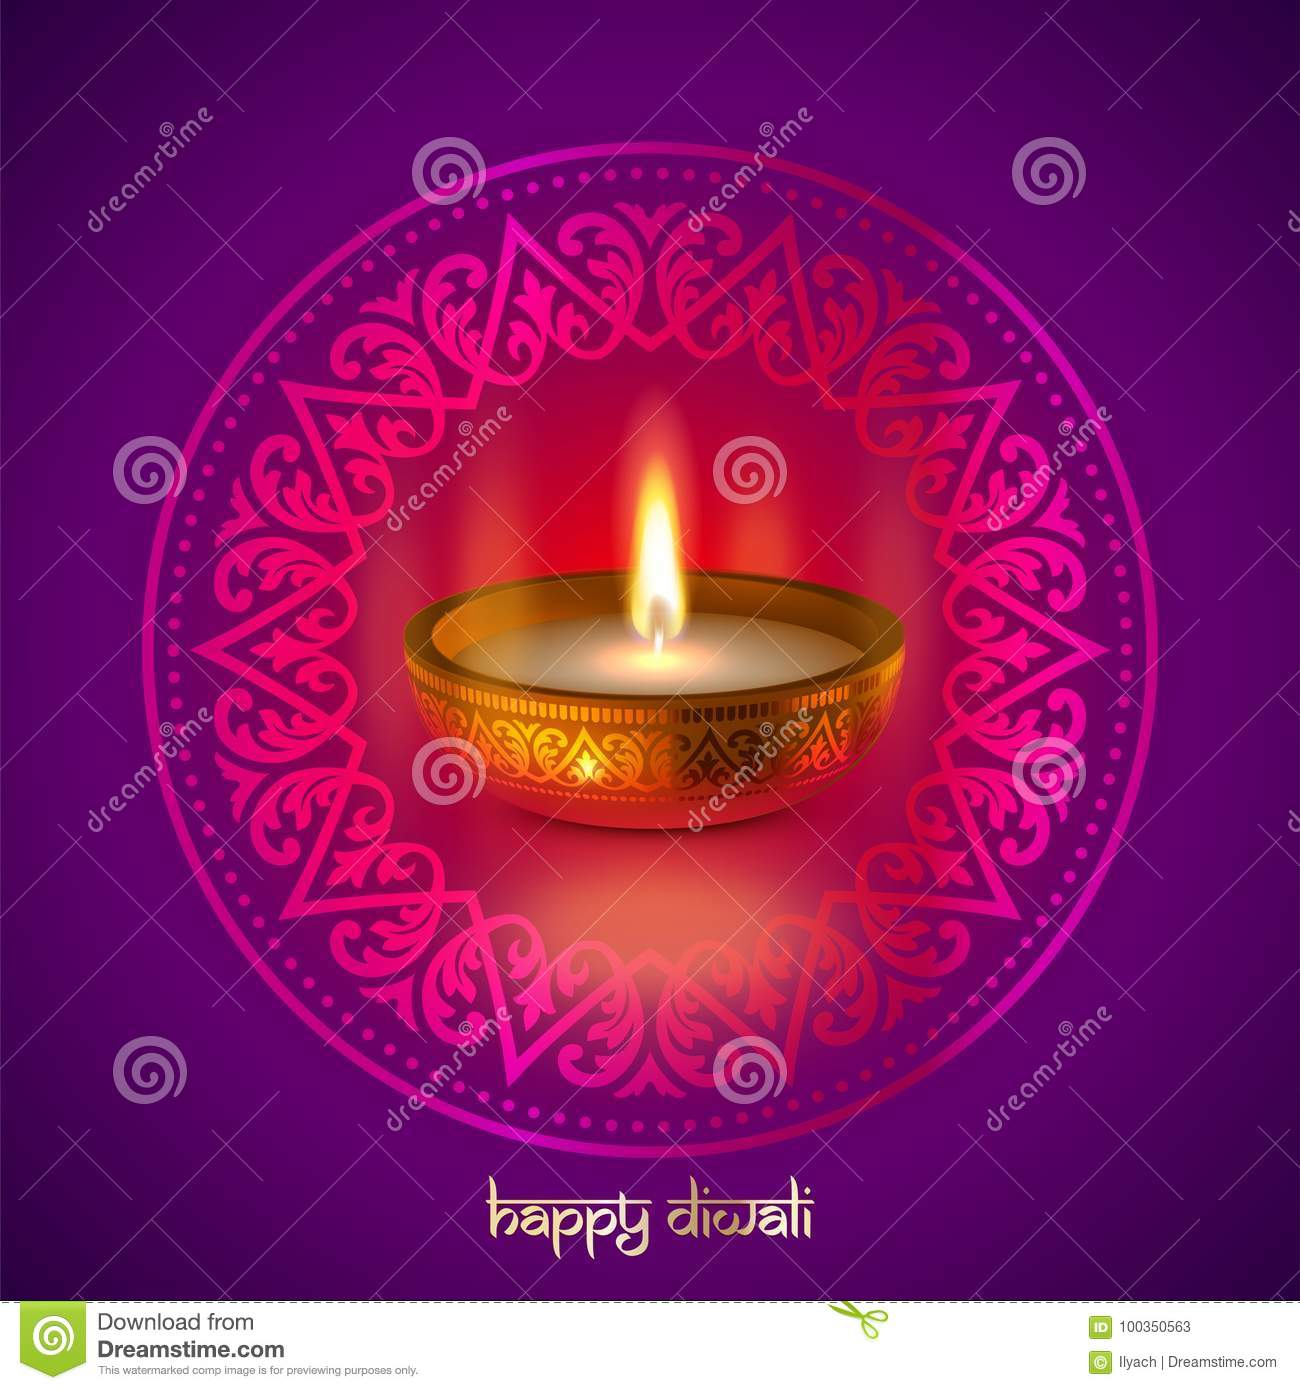 Happy Diwali Gold Candle Light Indian Festival Greeting Card Vector